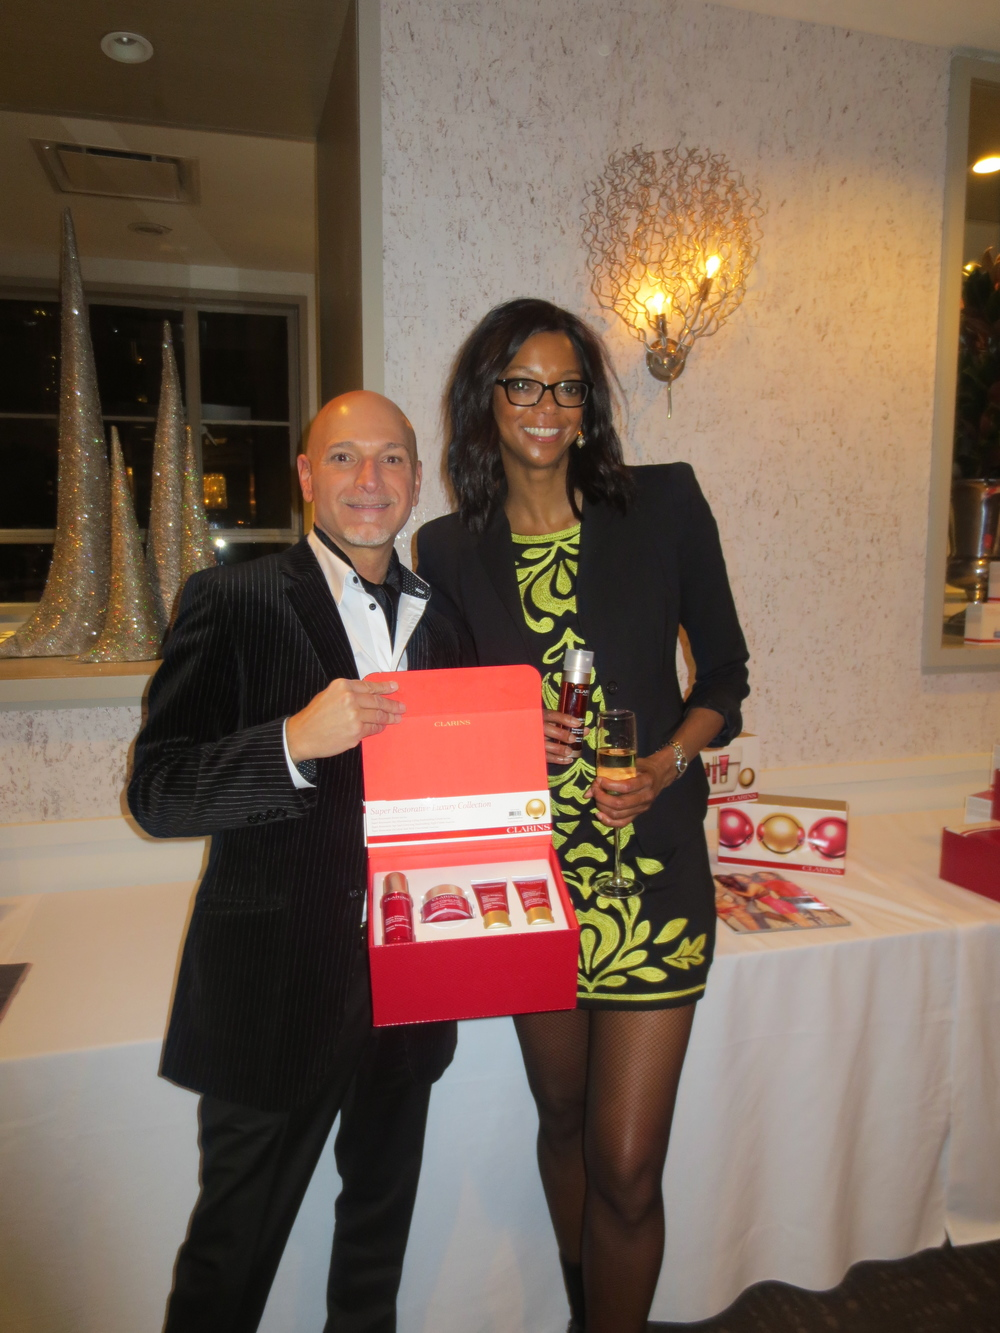 With Tony Losavio, Education Manager of Clarins.